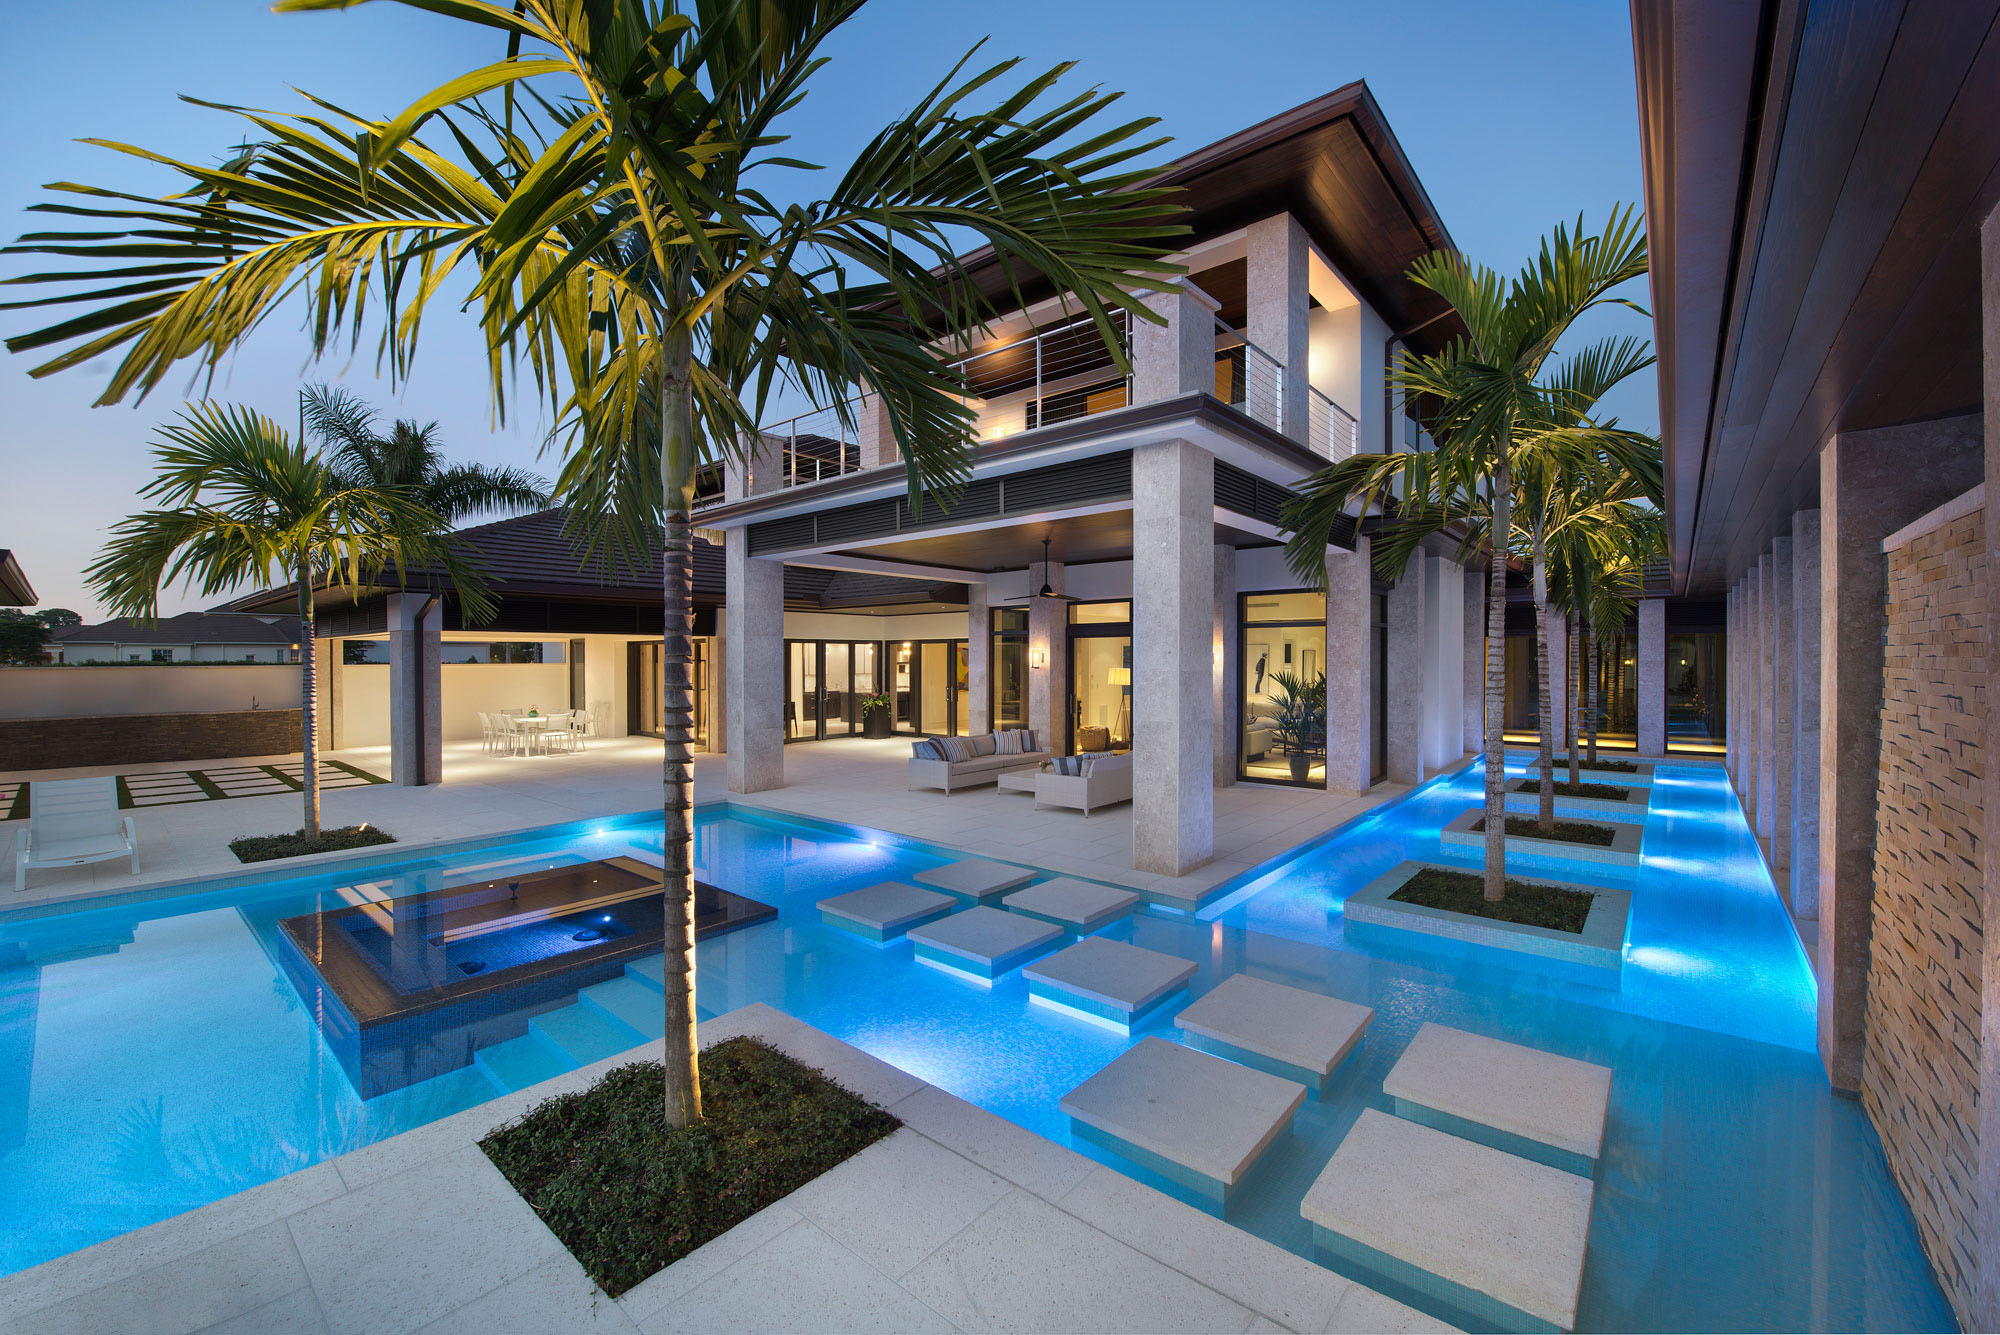 Custom dream home in florida with elegant swimming pool for Home designs with pool